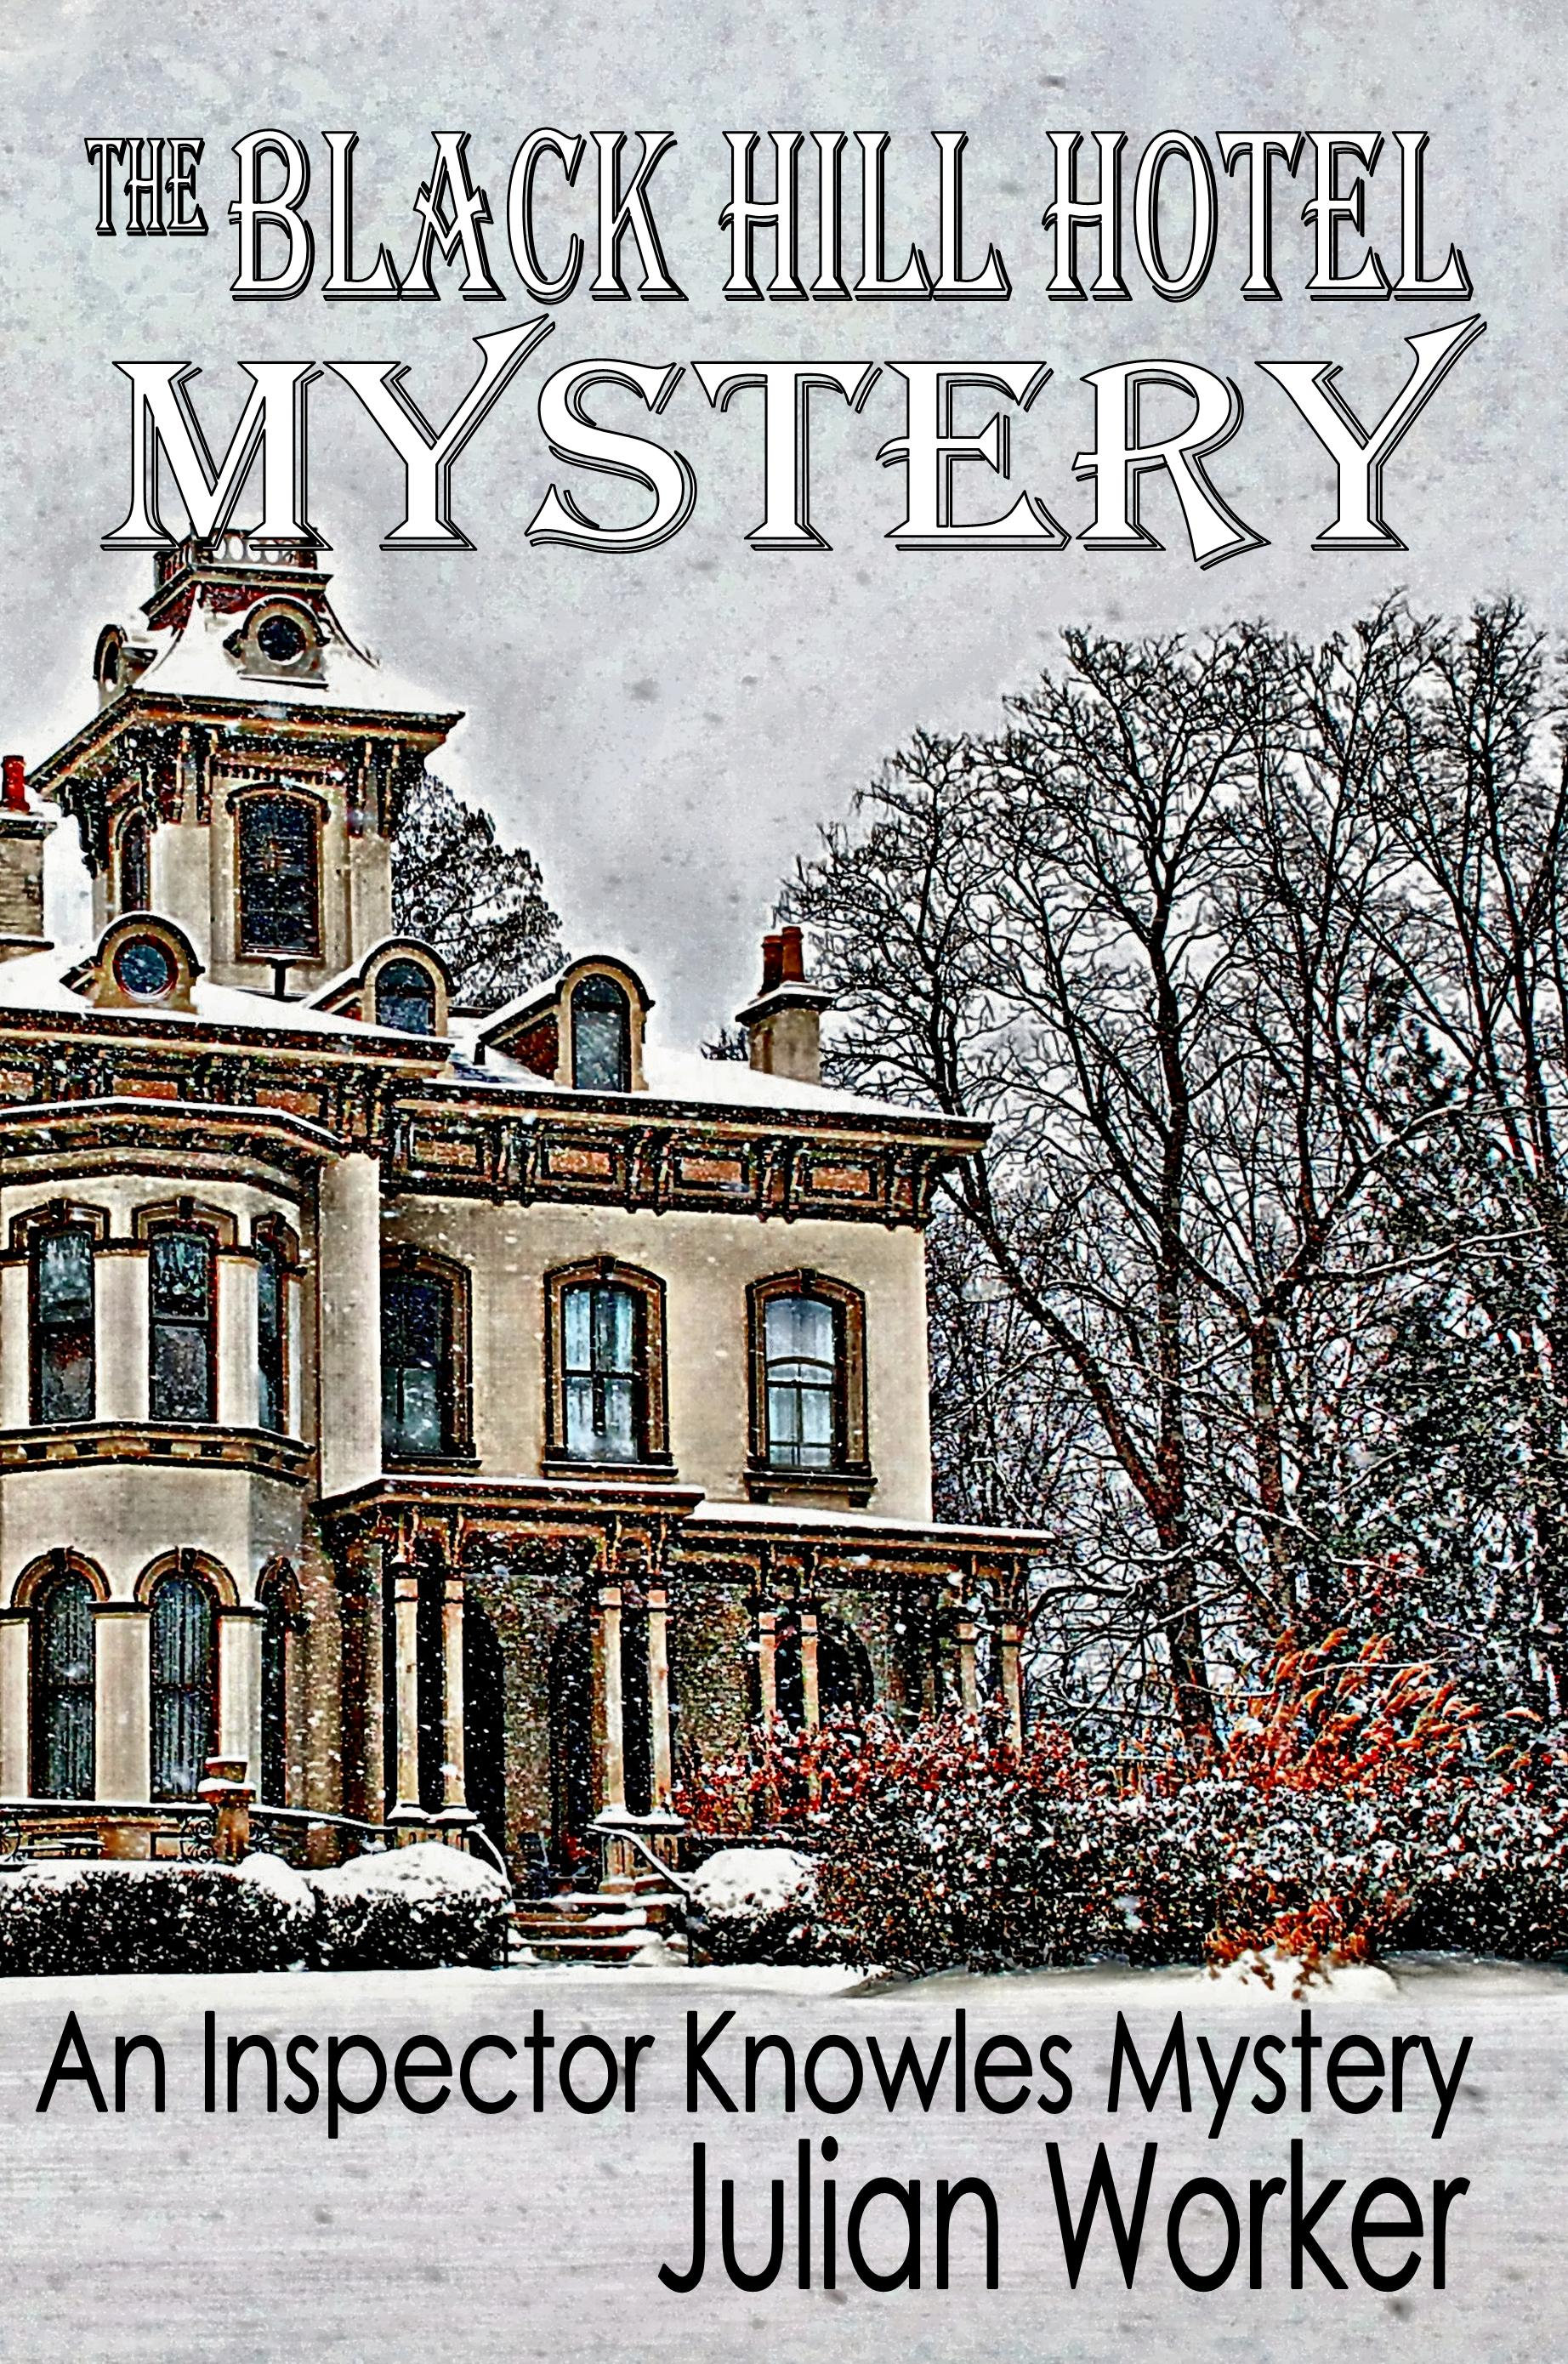 The Black Hill Hotel Mystery – 5